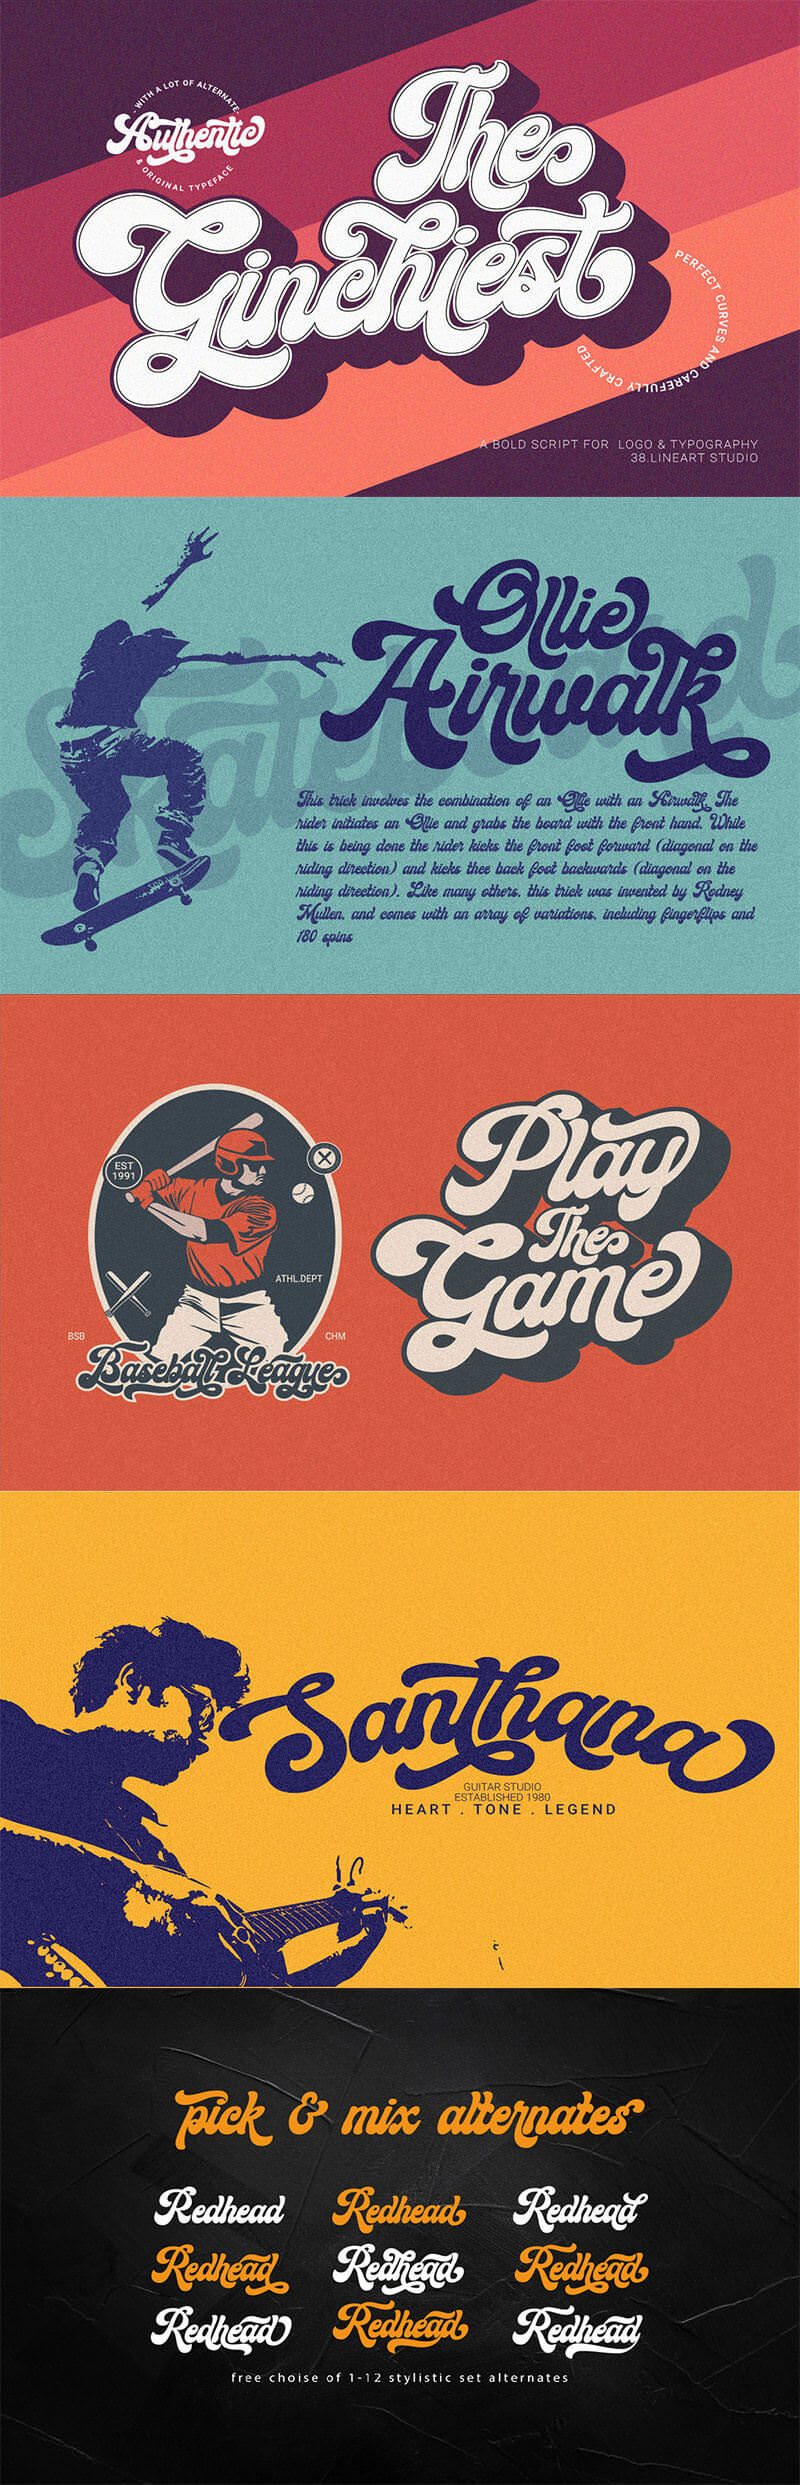 Ginchiest-The-Retro-Groovy-Font-1